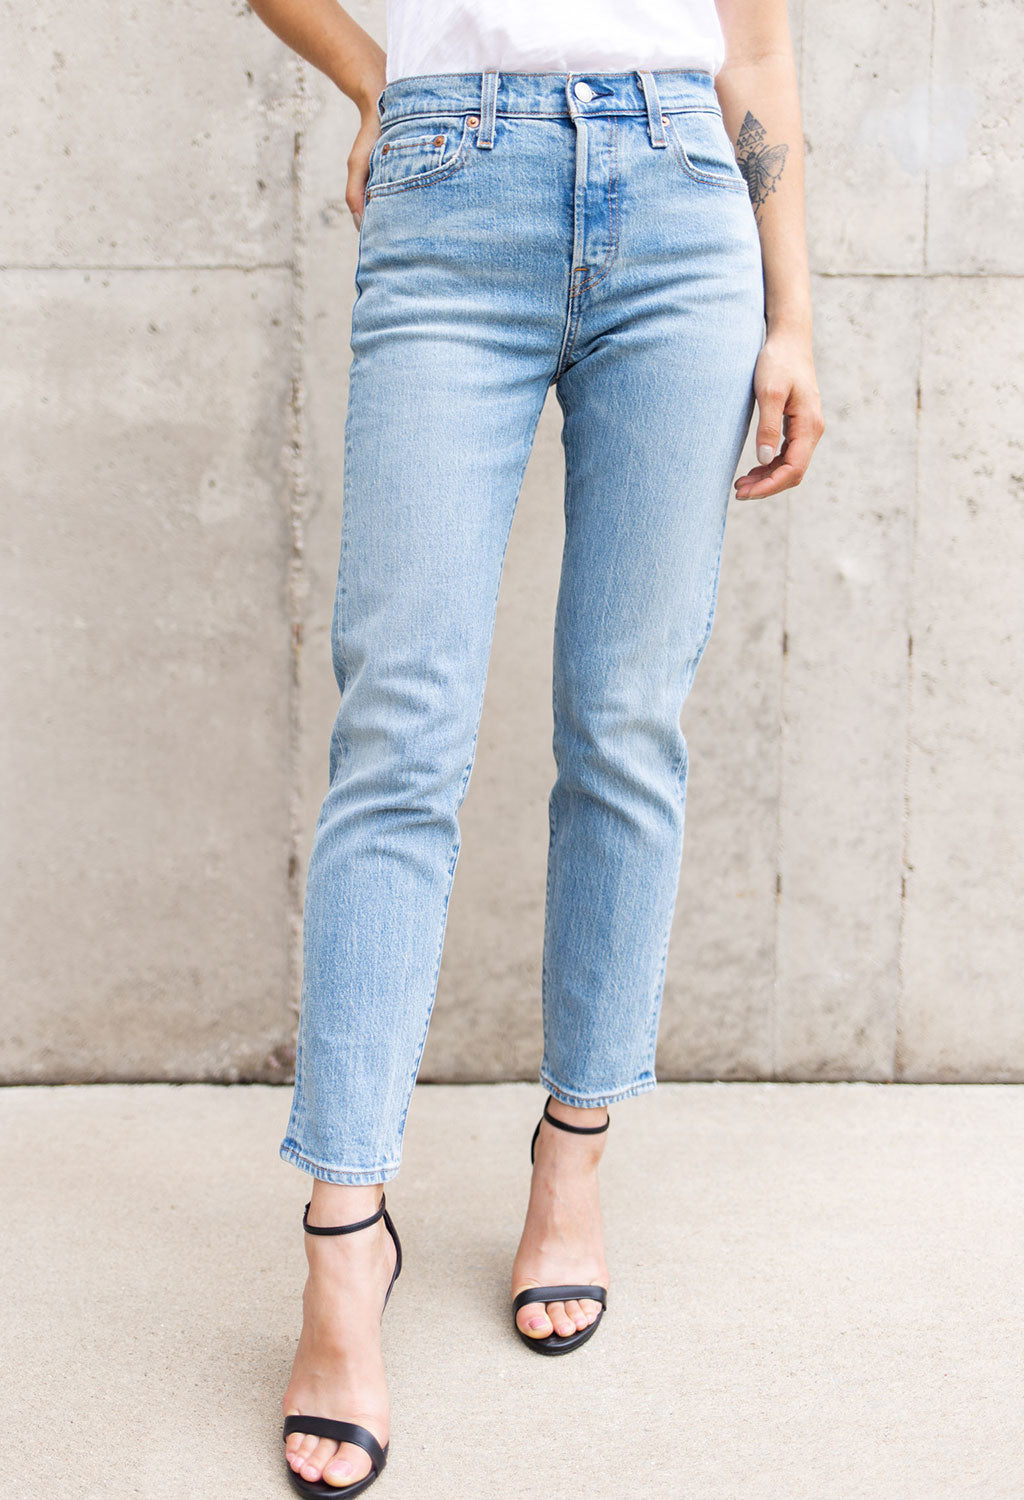 Levi's Wedgie High Rise - RUST & Co.